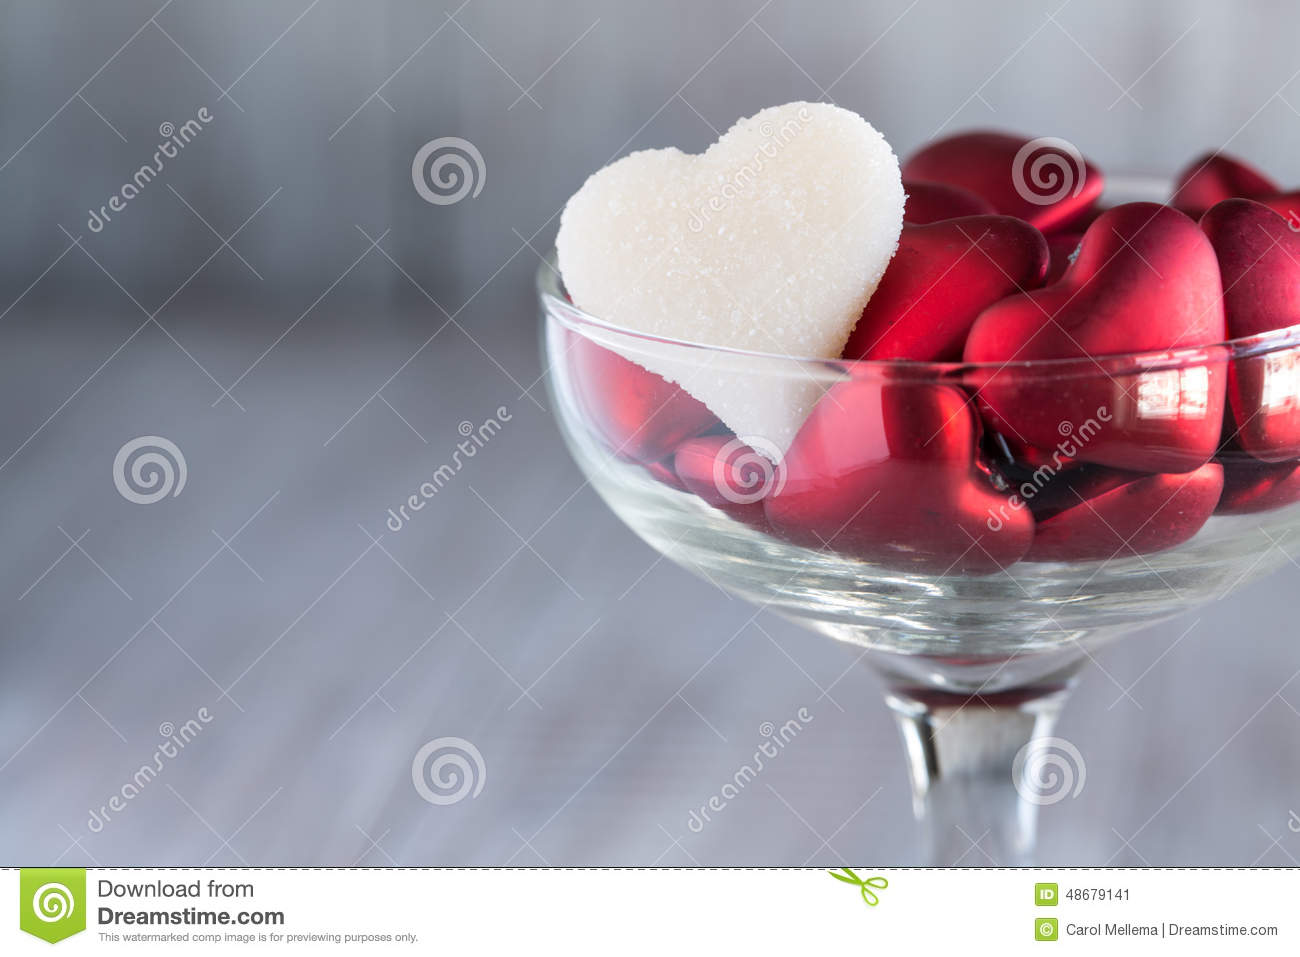 Valentines day candy hearts in wine glass love symbols stock image valentines day candy hearts in wine glass love symbols biocorpaavc